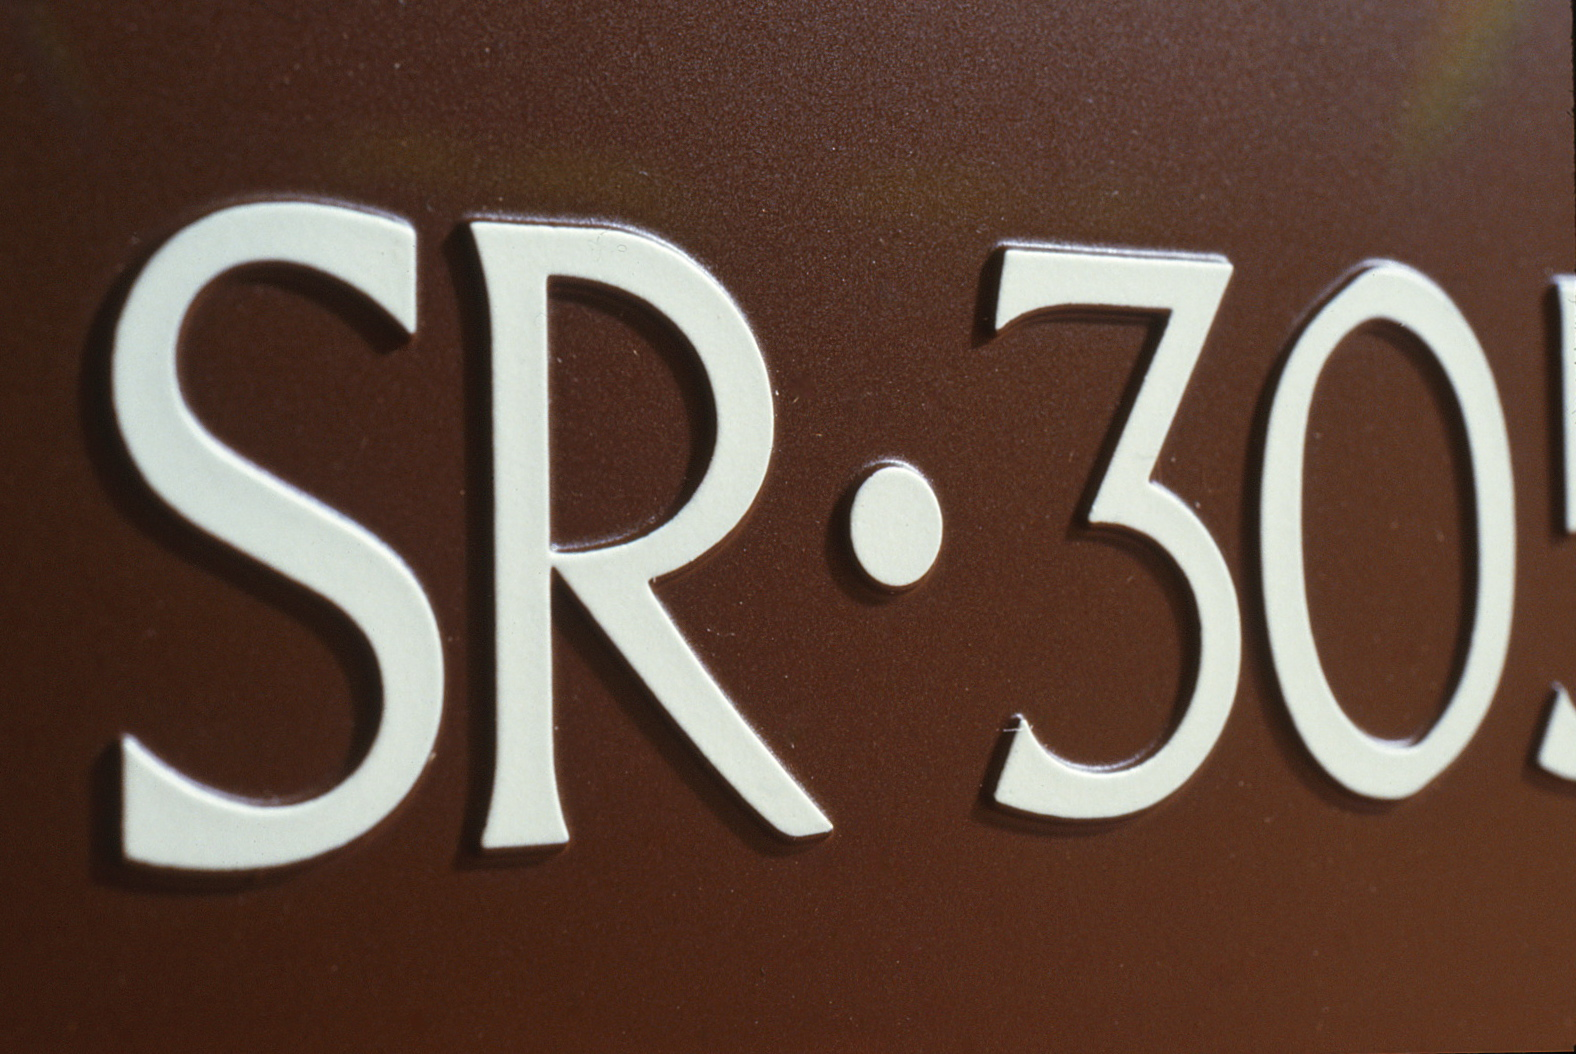 Closeup of two letters and two numbers using this font on a sign.